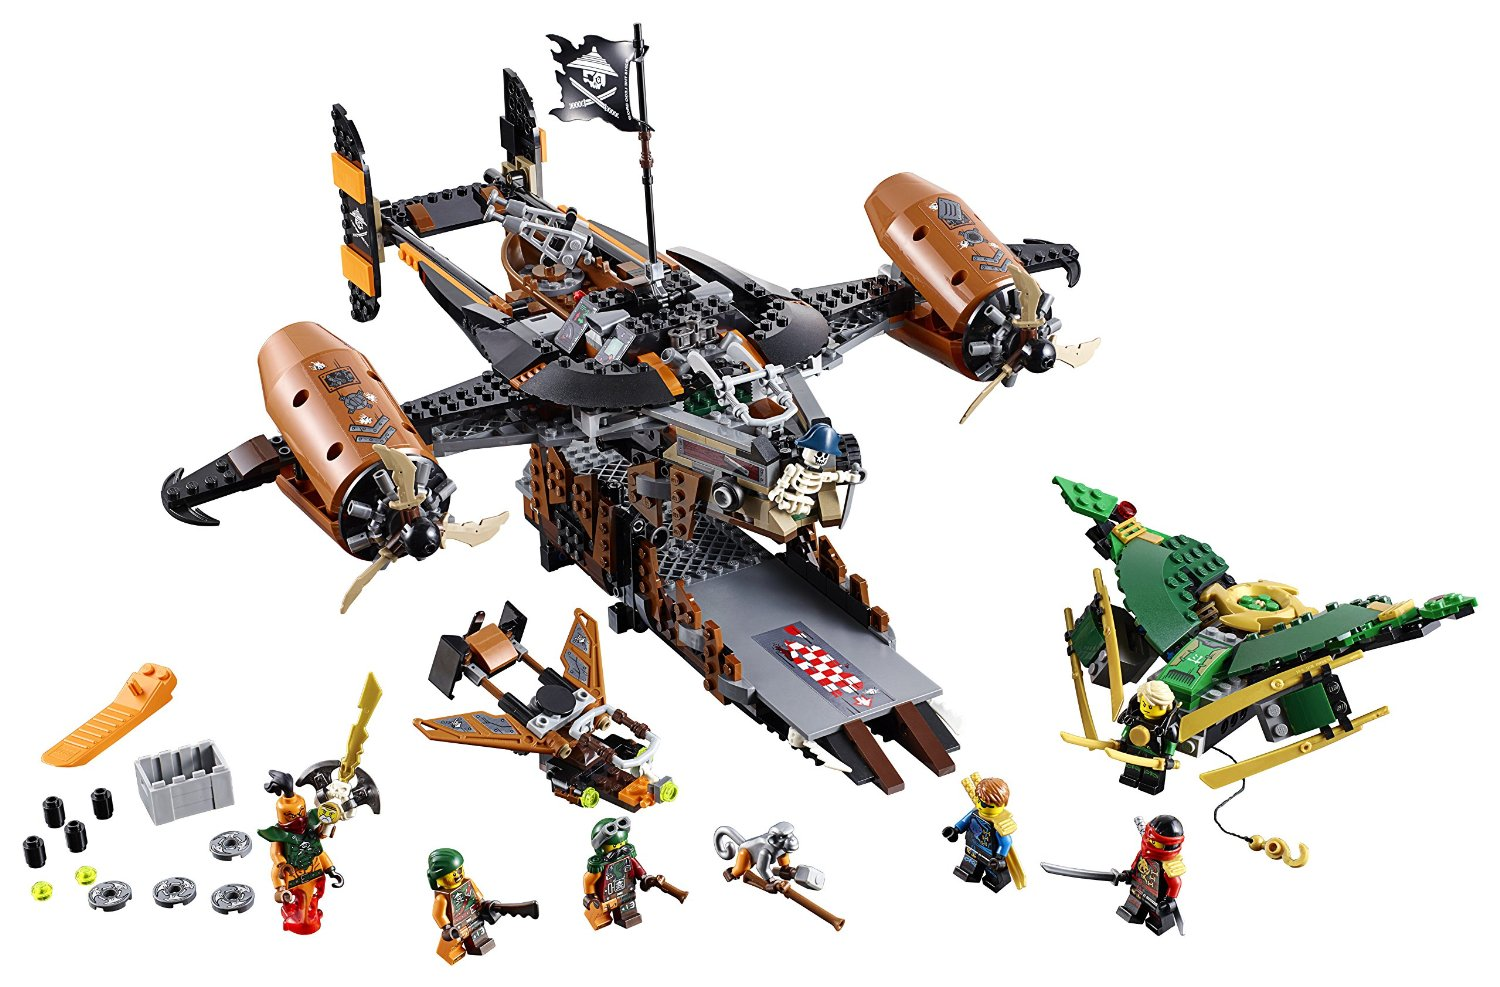 Brickpicker is the top resource for LEGO investing, LEGO collecting, LEGO sales/deals & LEGO Reviews. Our LEGO Price guide provides values of new/used LEGO sets.